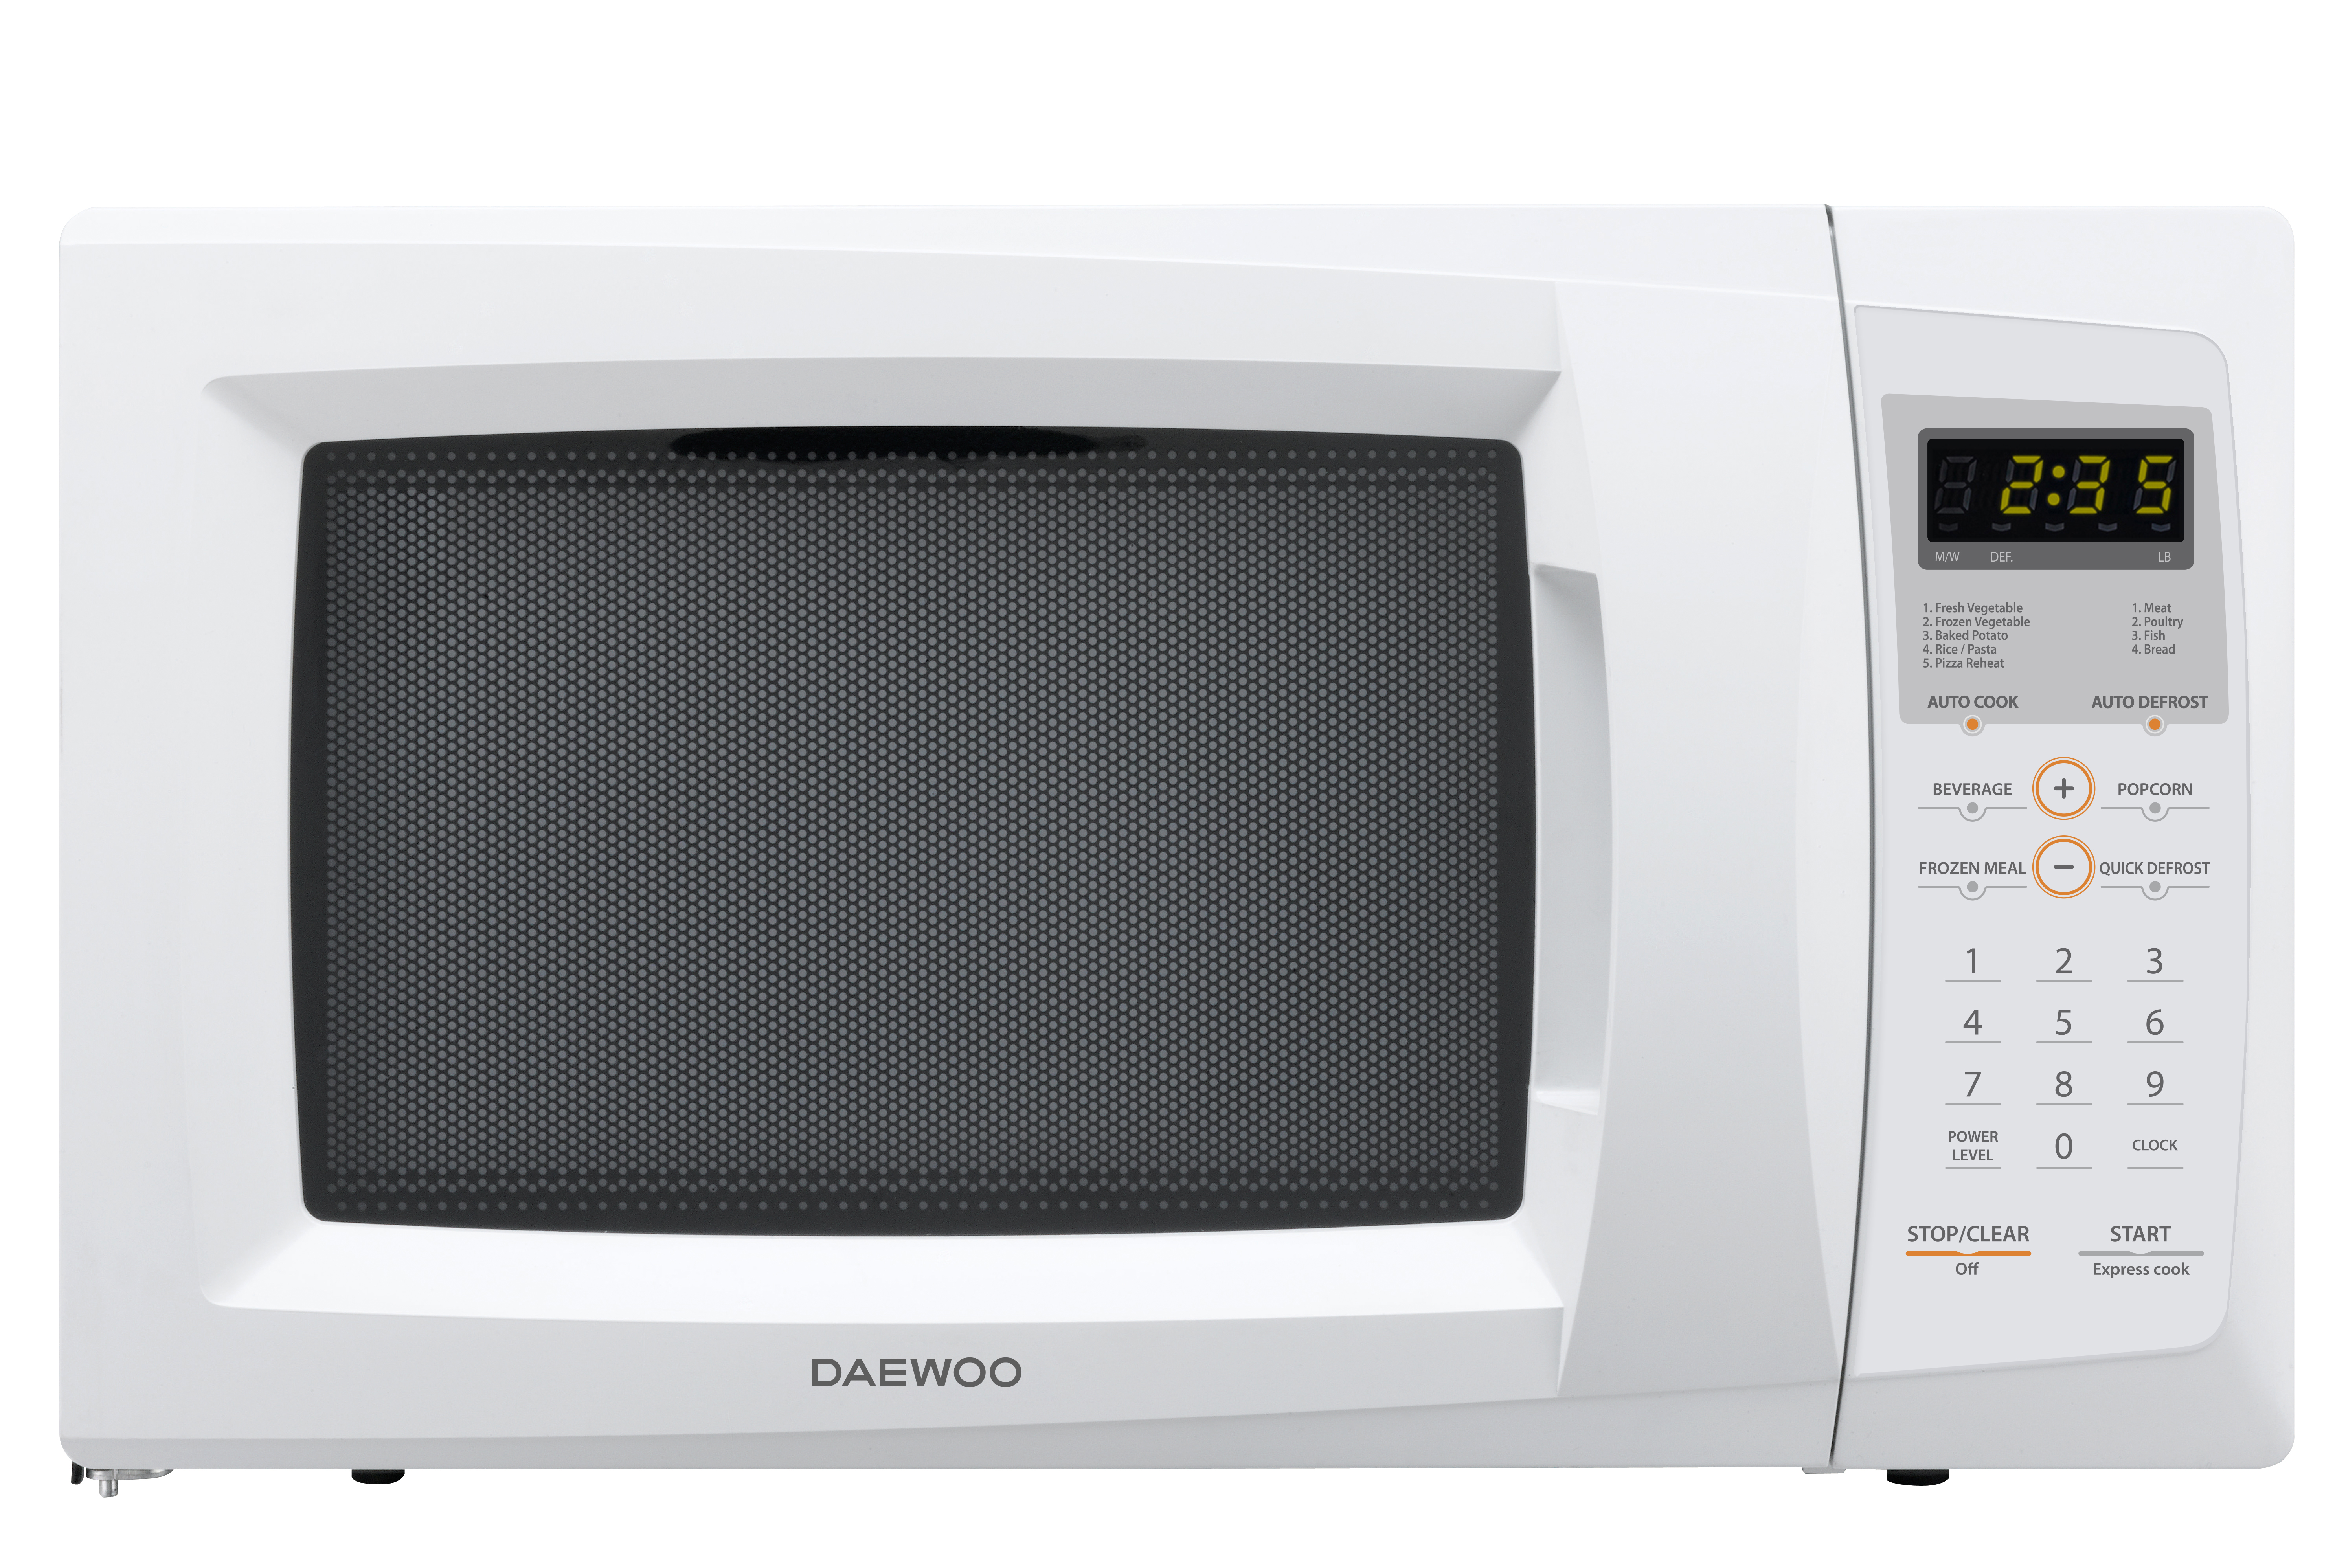 0.9 cu ft microwave oven